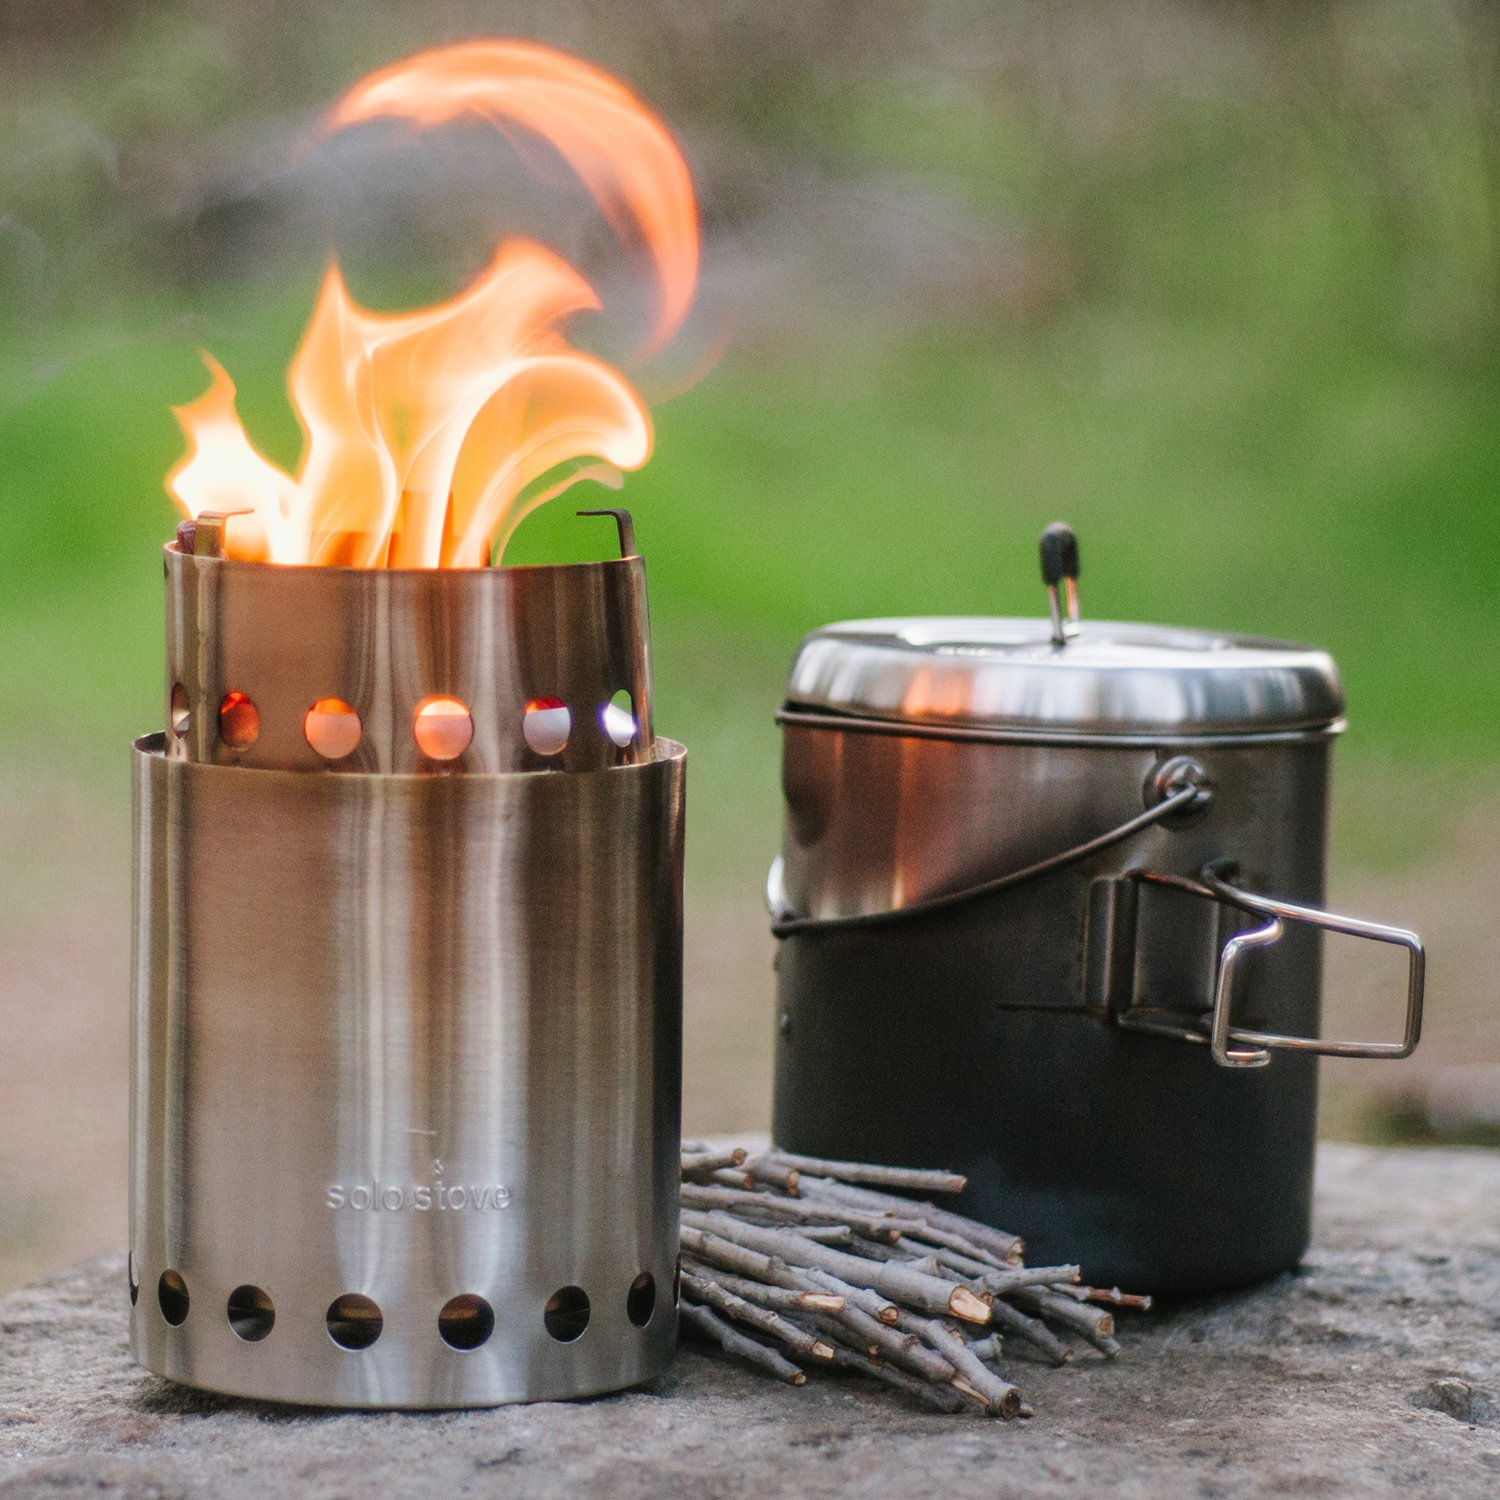 Solo Stove Titan & Solo Pot 1800 Camp Stove Combo: Woodburning Backpacking Stove Great for Camping and Survival by Solo Stove (Image #8)